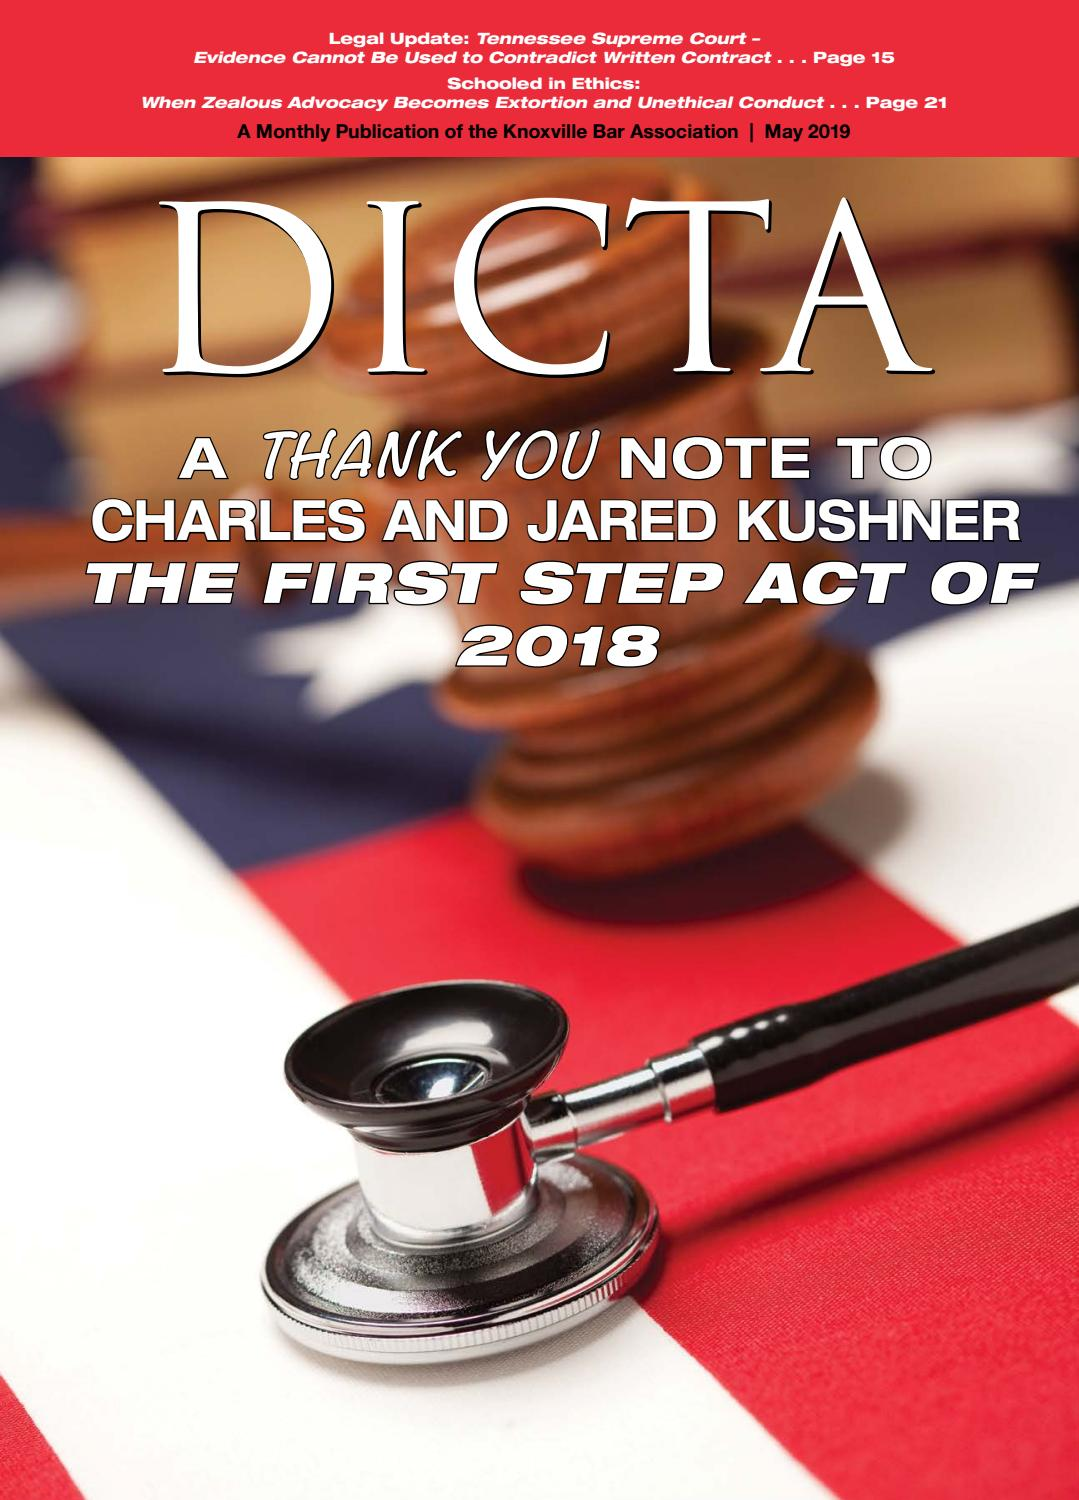 DICTA May 2019 by Knoxville Bar Association - issuu